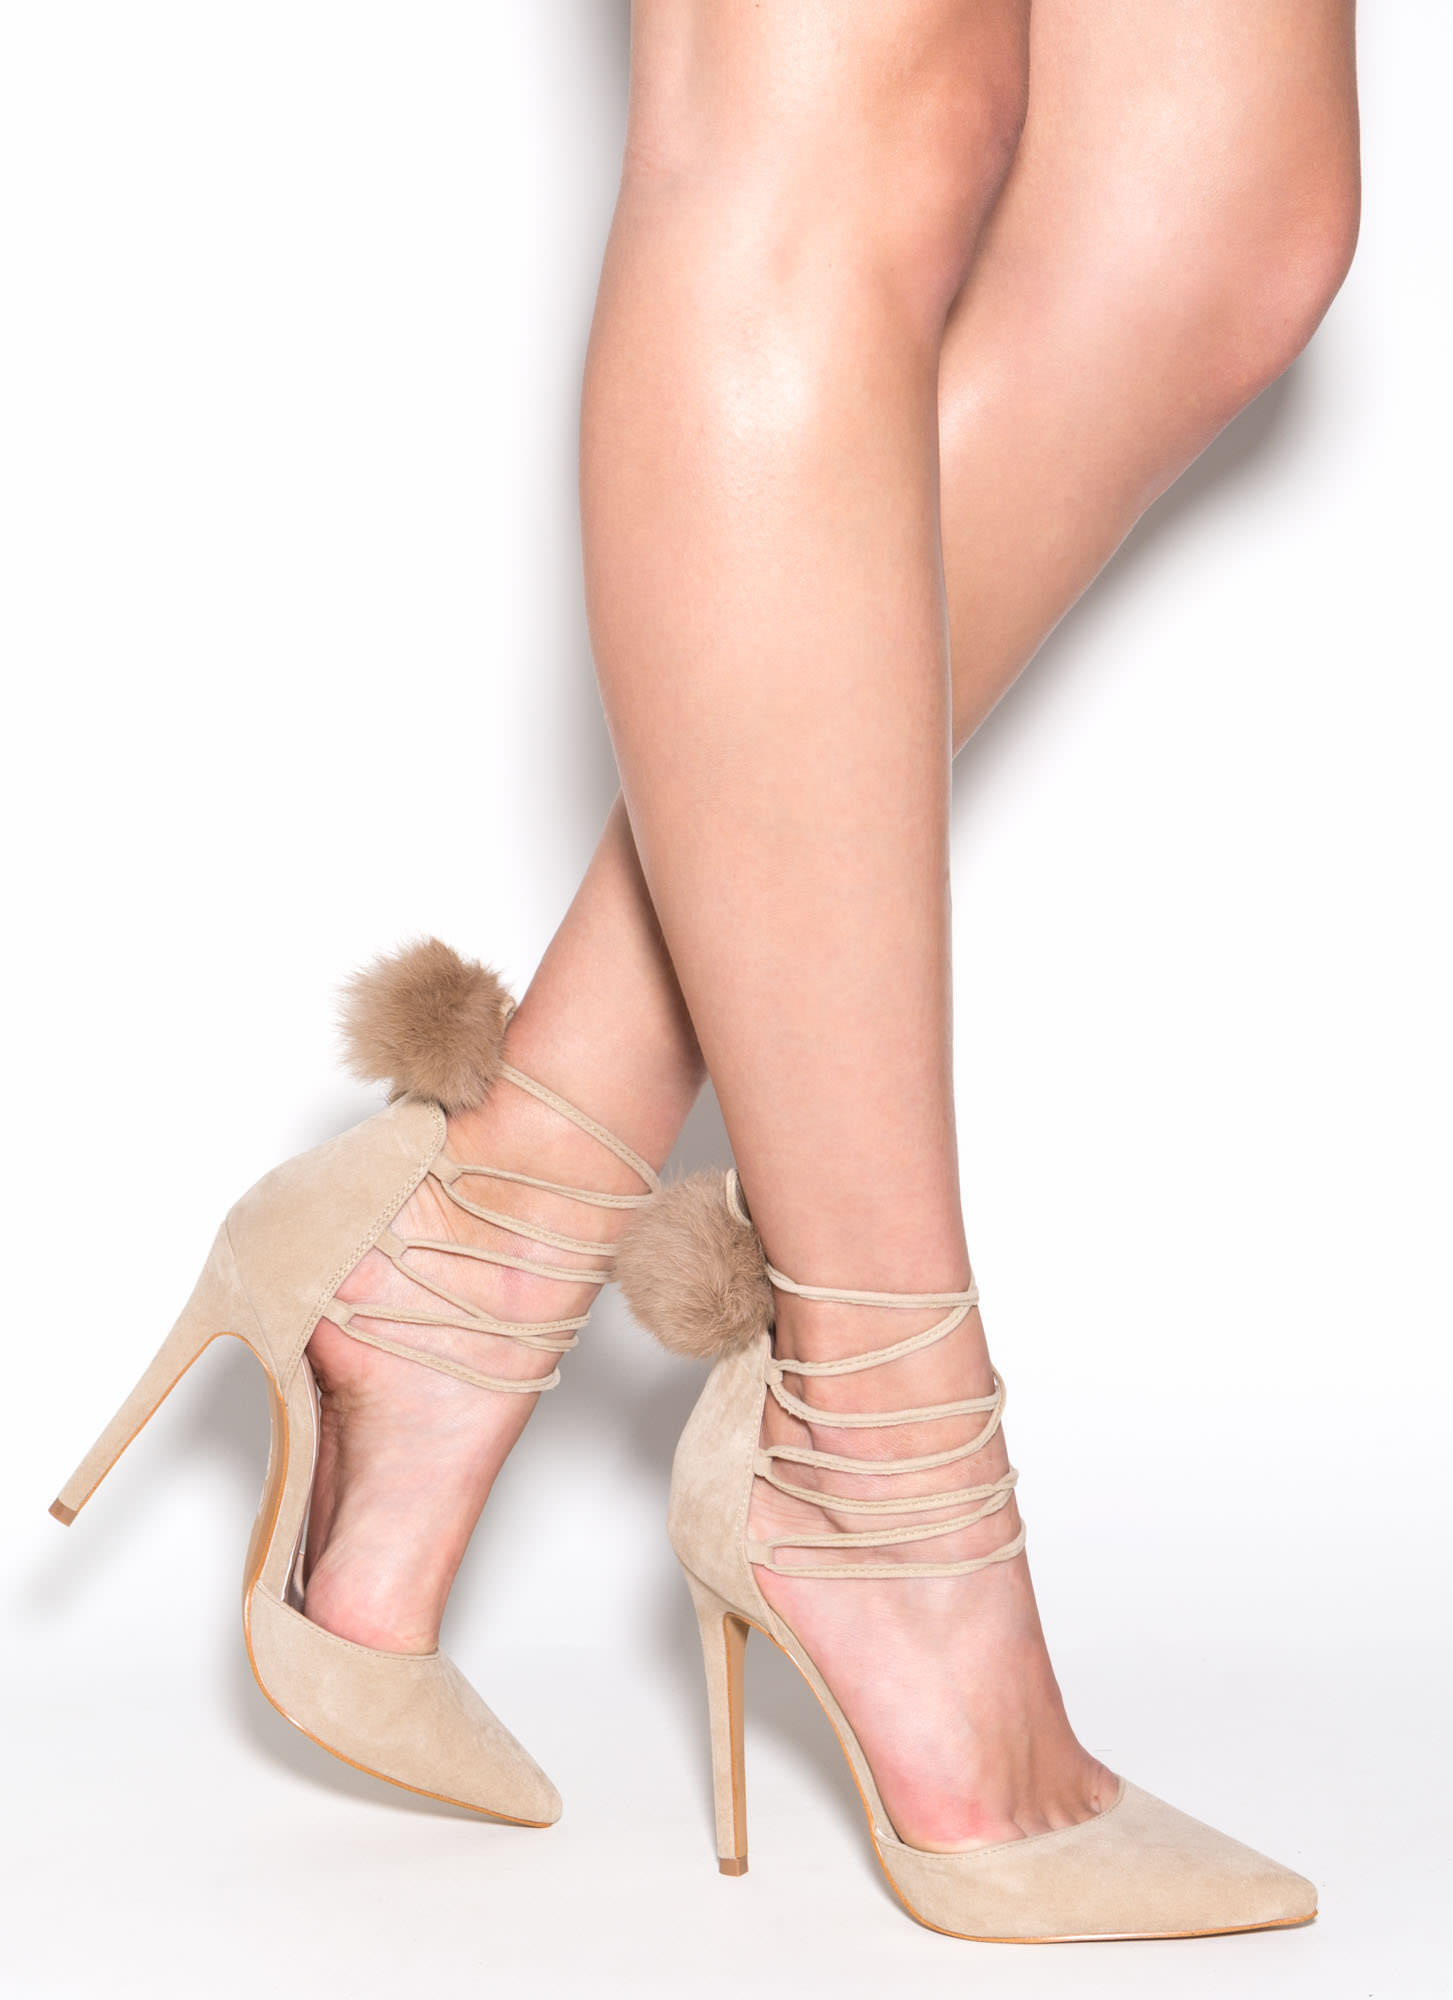 What Are Nude Heels